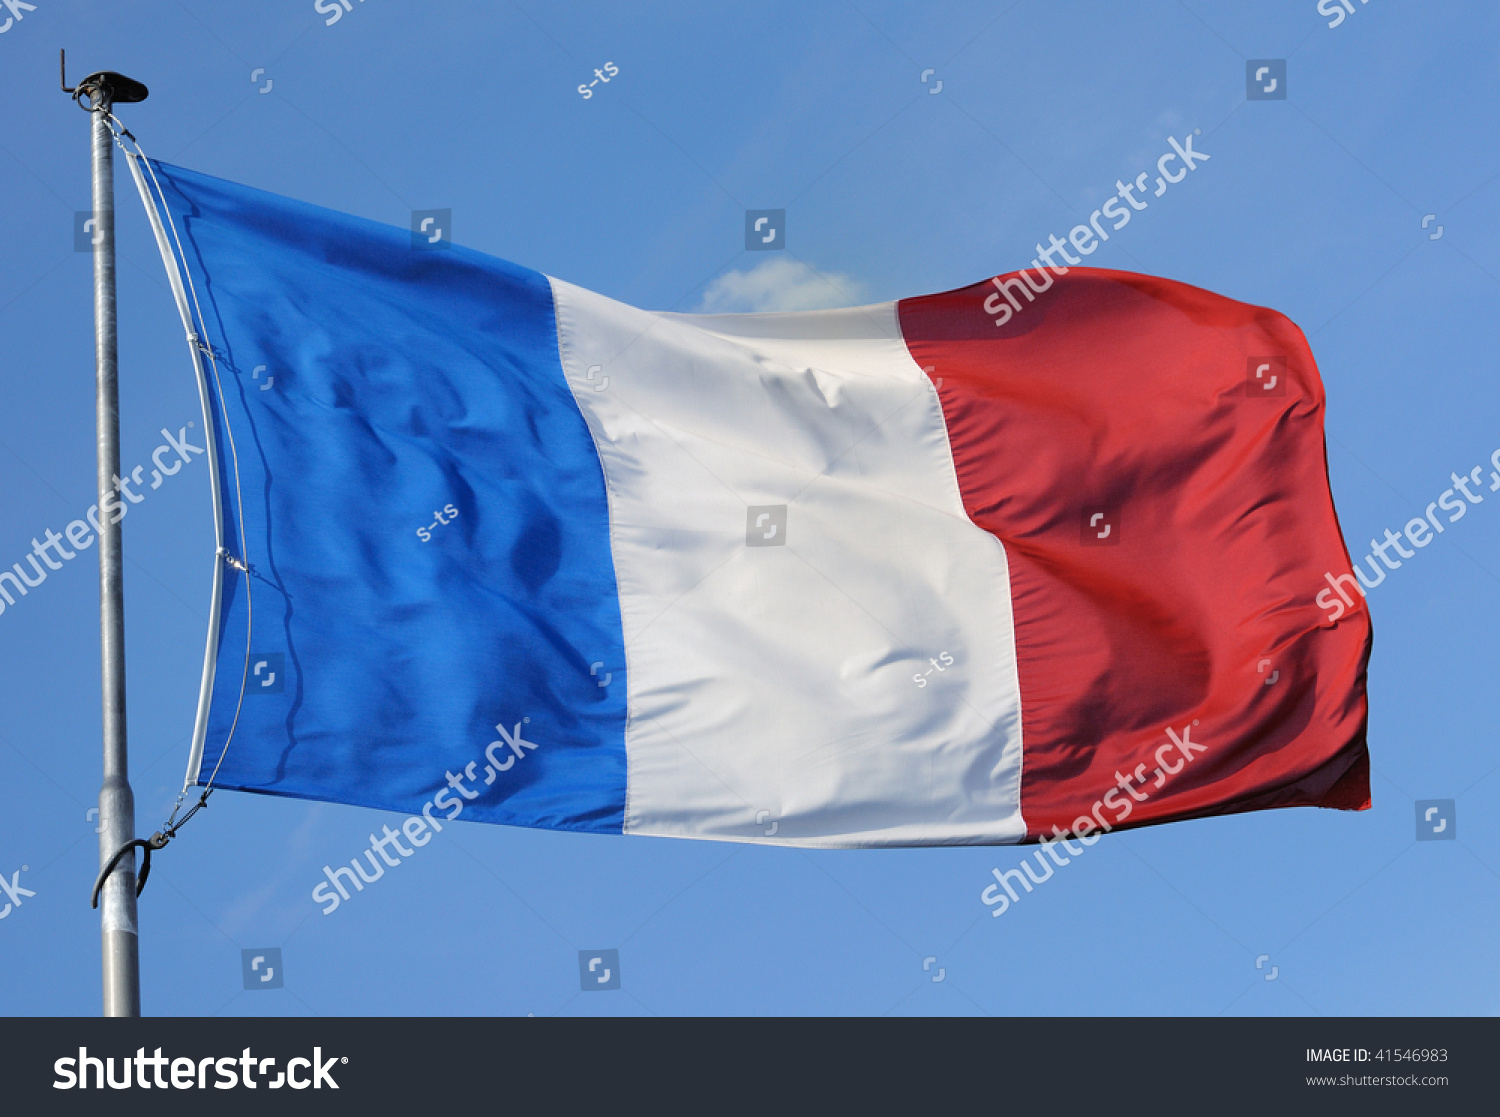 france blows